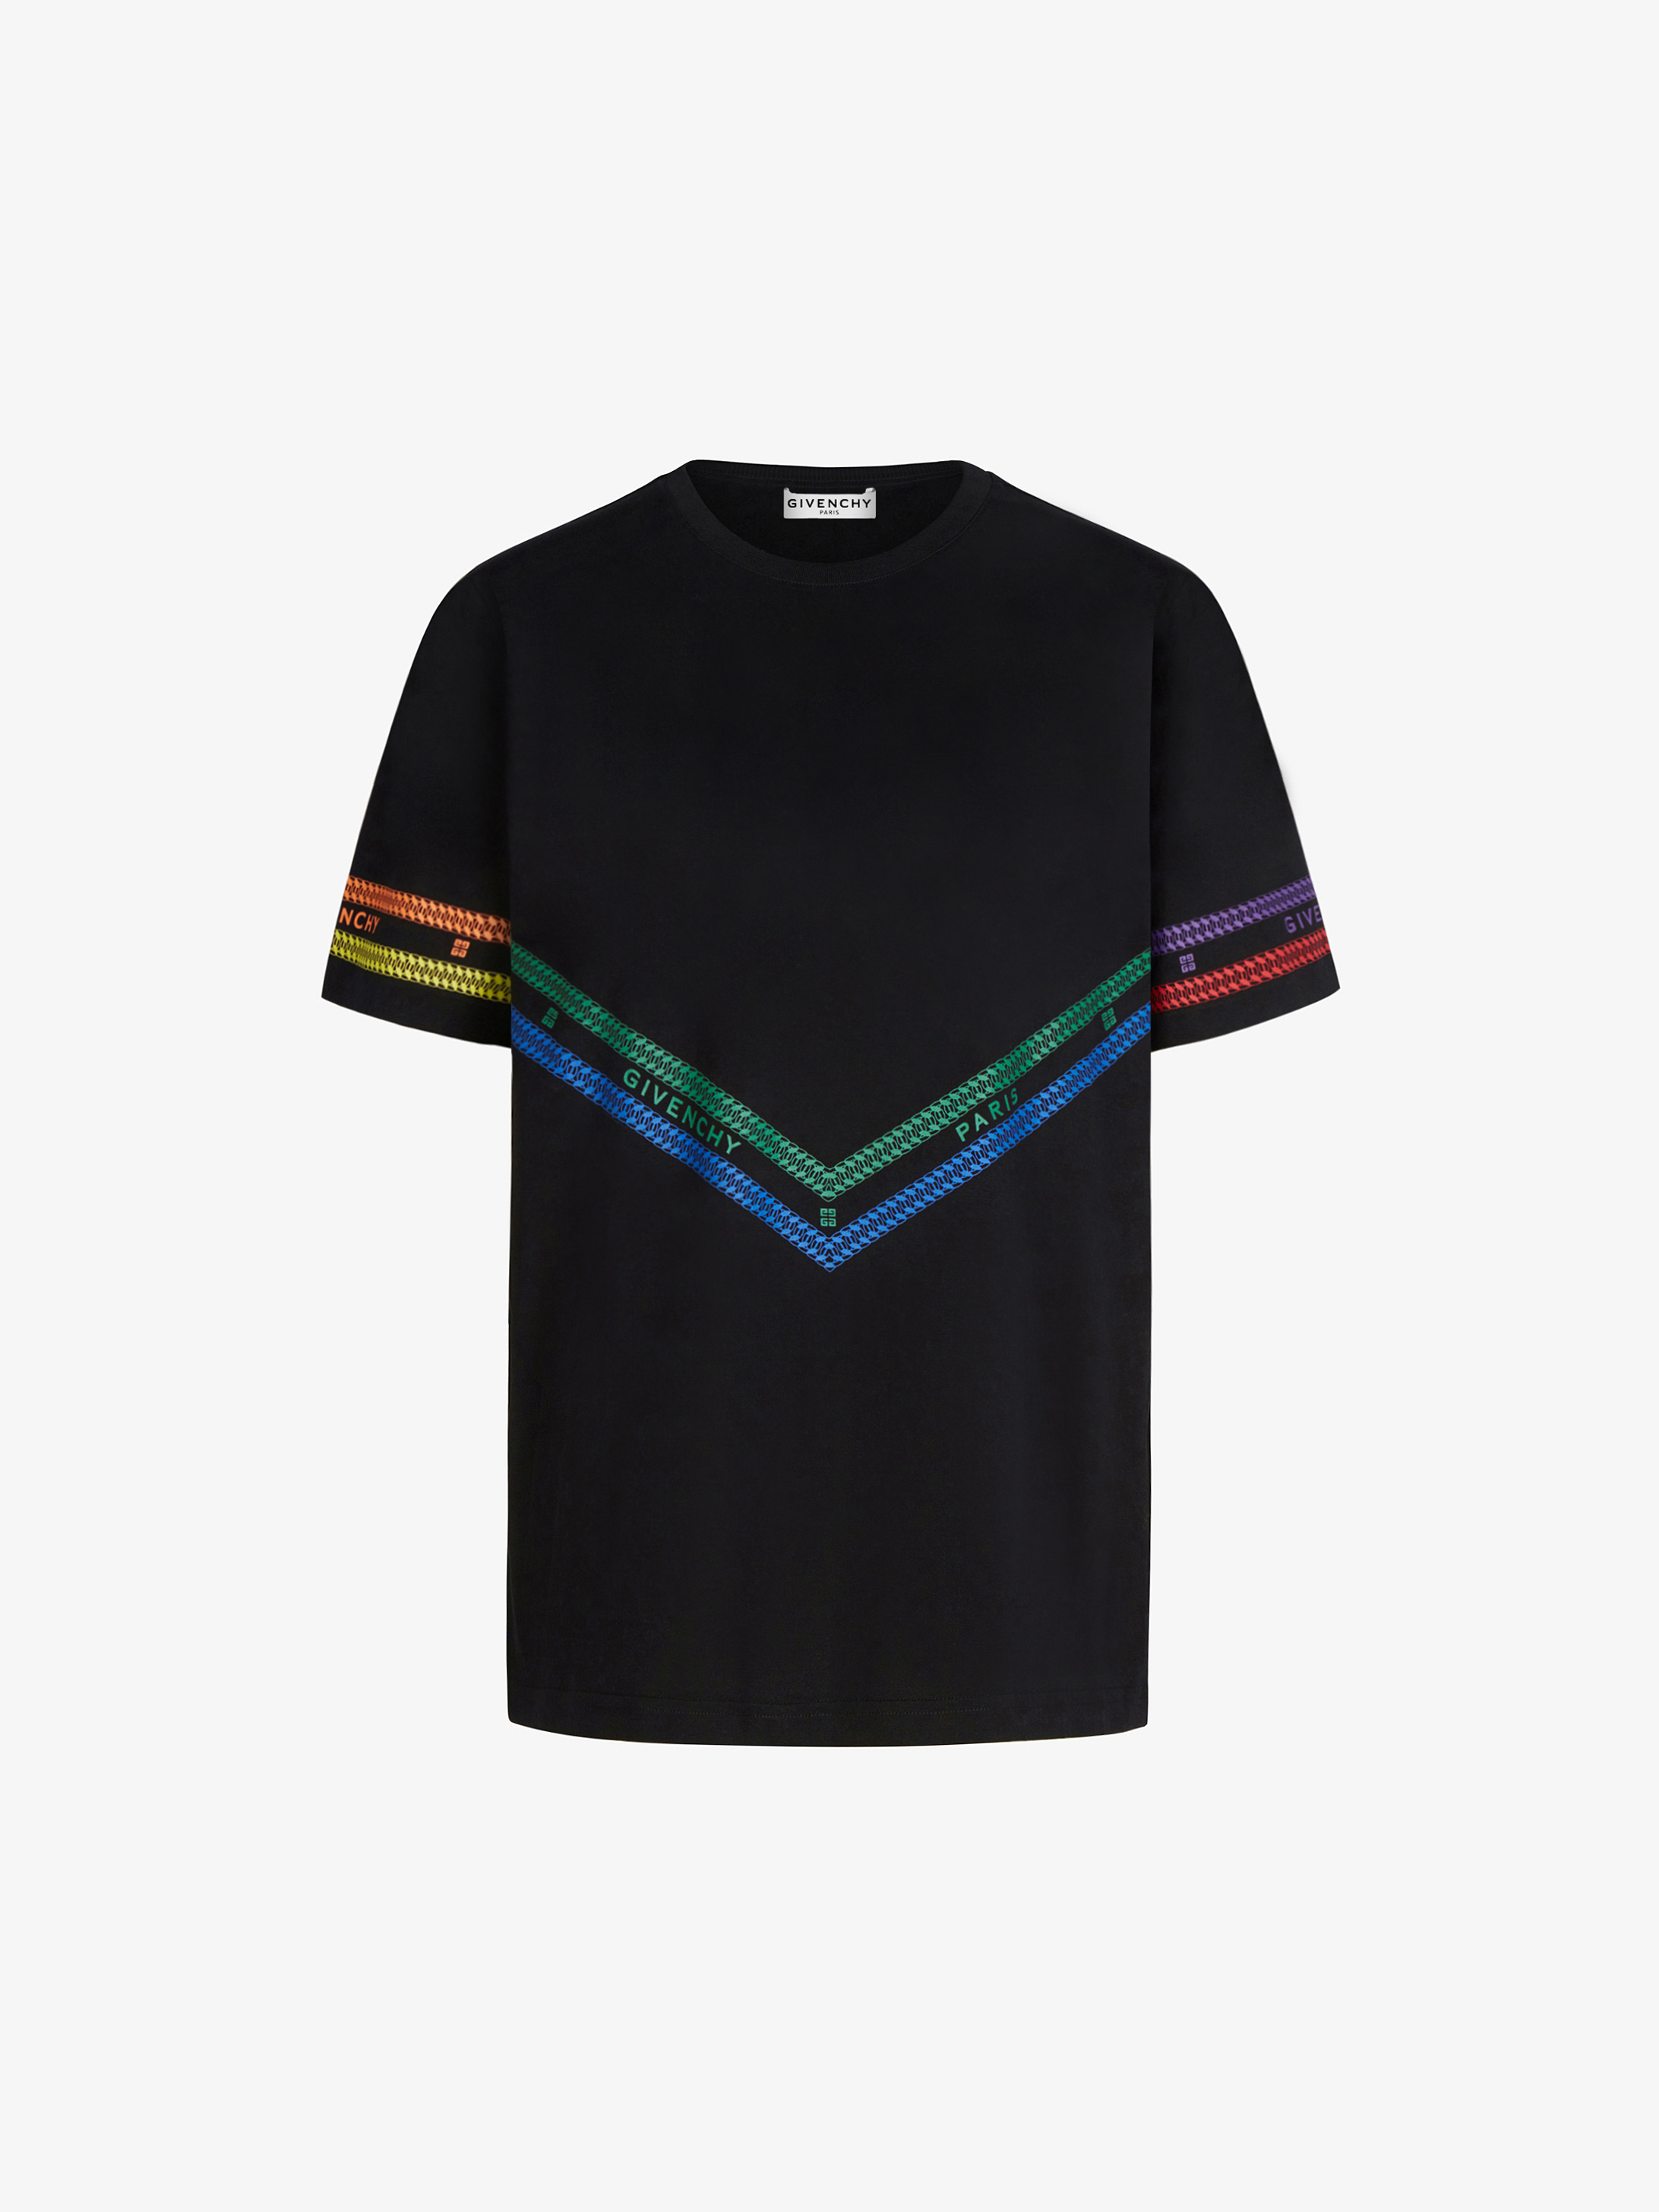 GIVENCHY multicolored Chain printed t-shirt